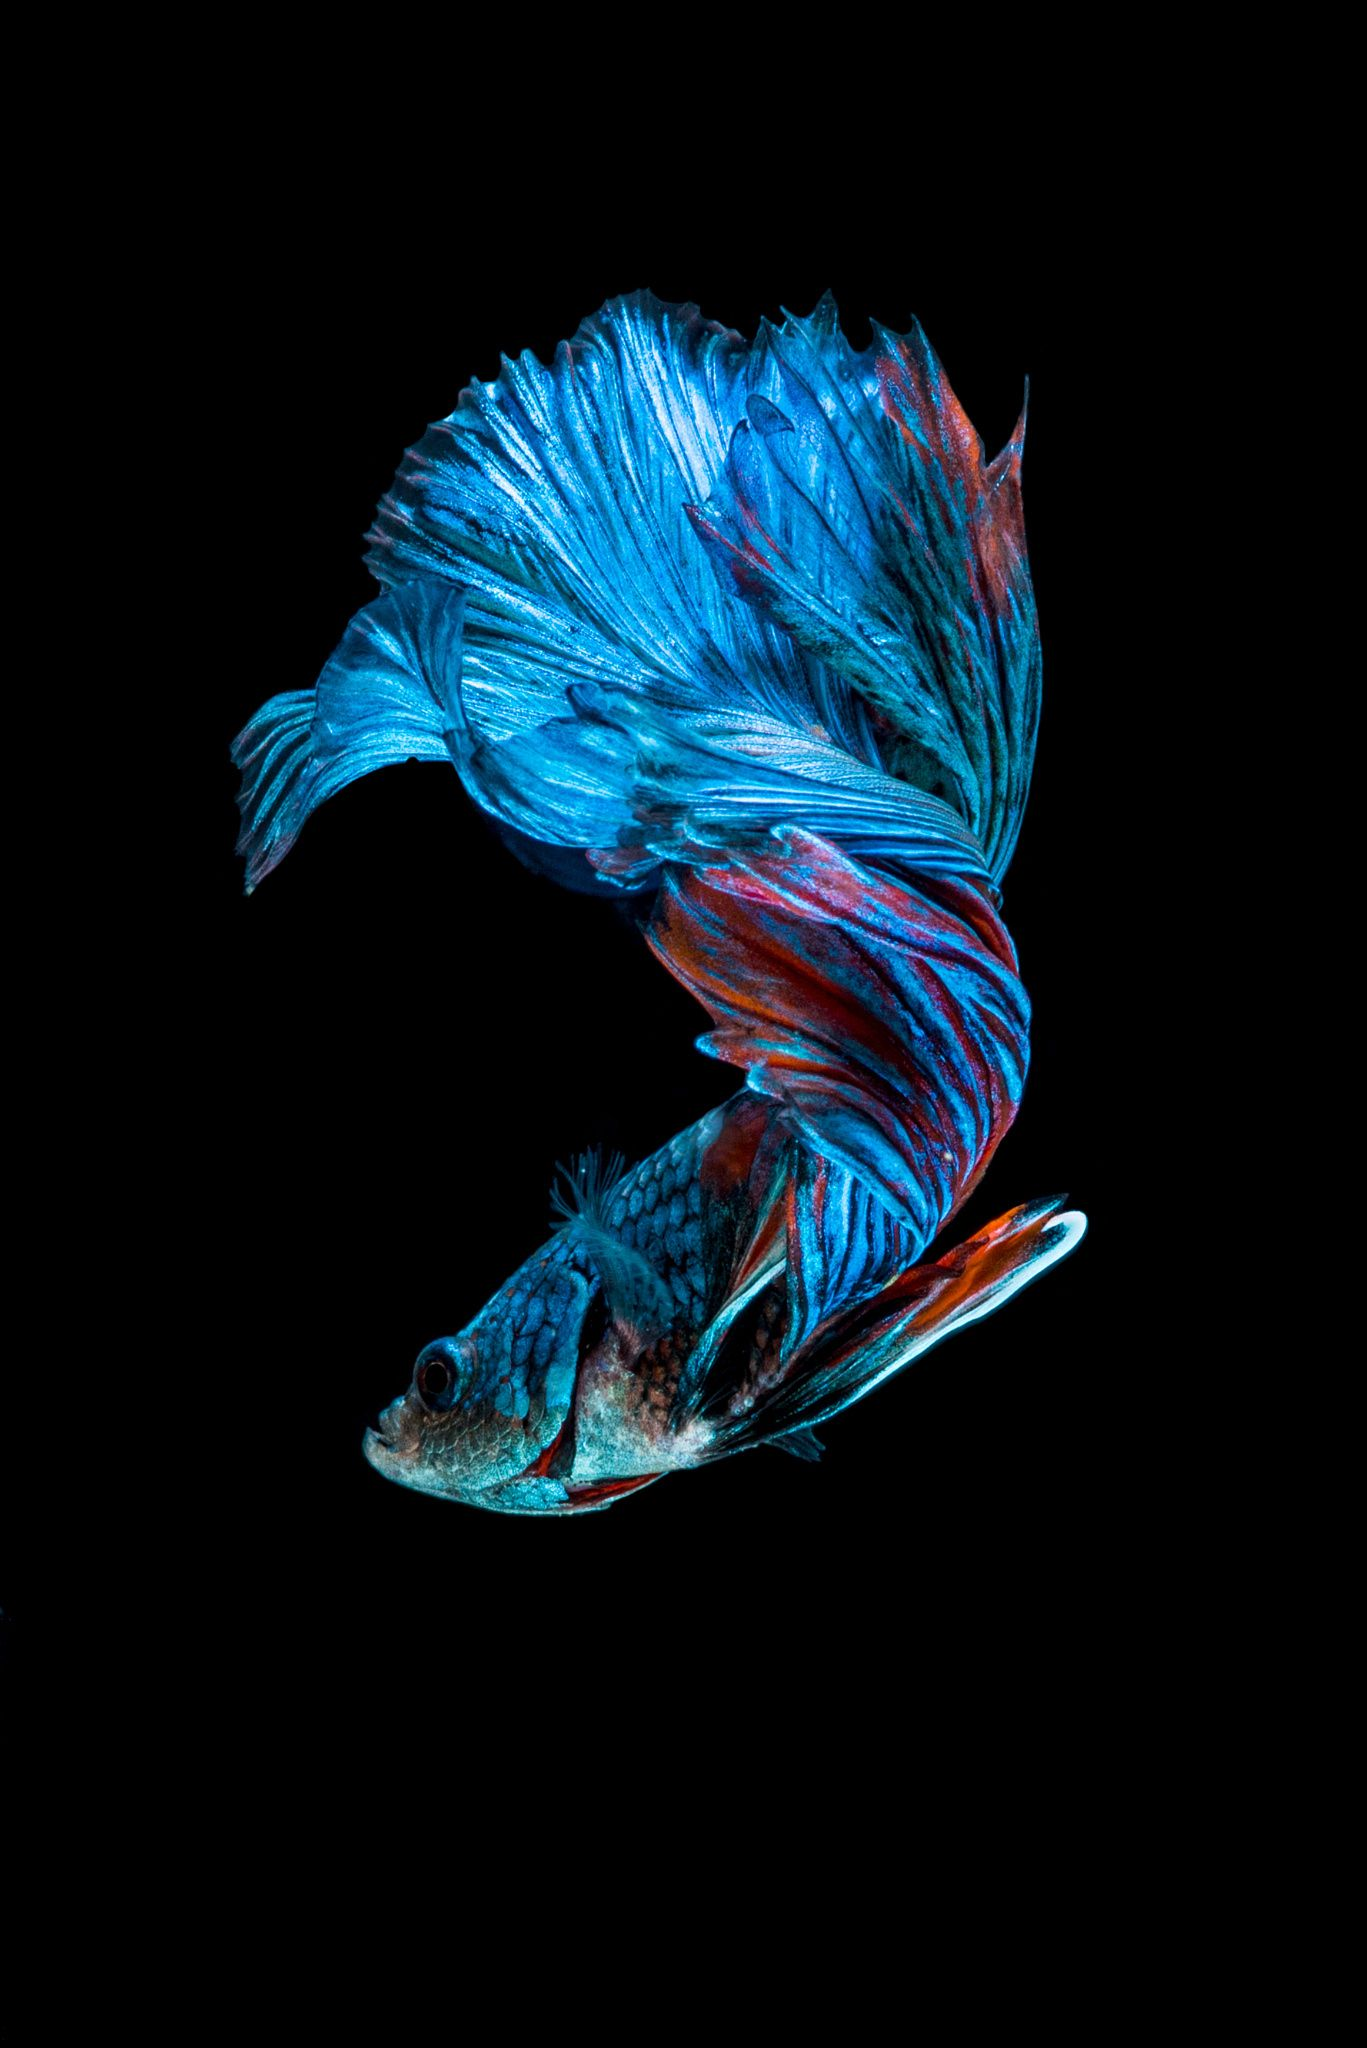 Wallpaper iphone cupang - Betta Splendens Siamese Fighting Fight Fish Aquarium Animal Animals